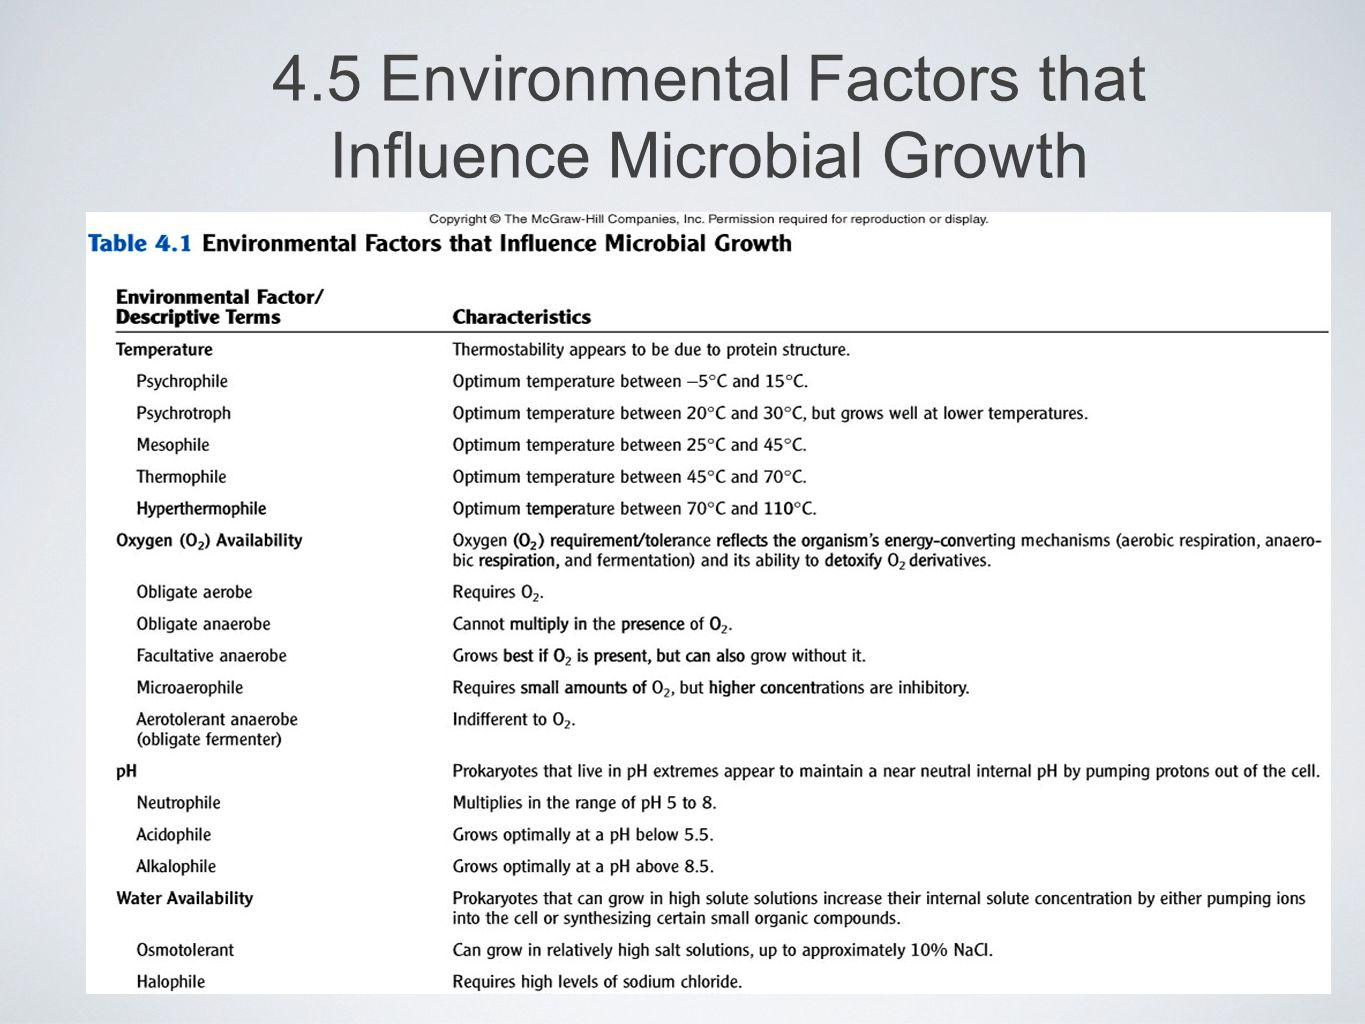 4.5 Environmental Factors that Influence Microbial Growth